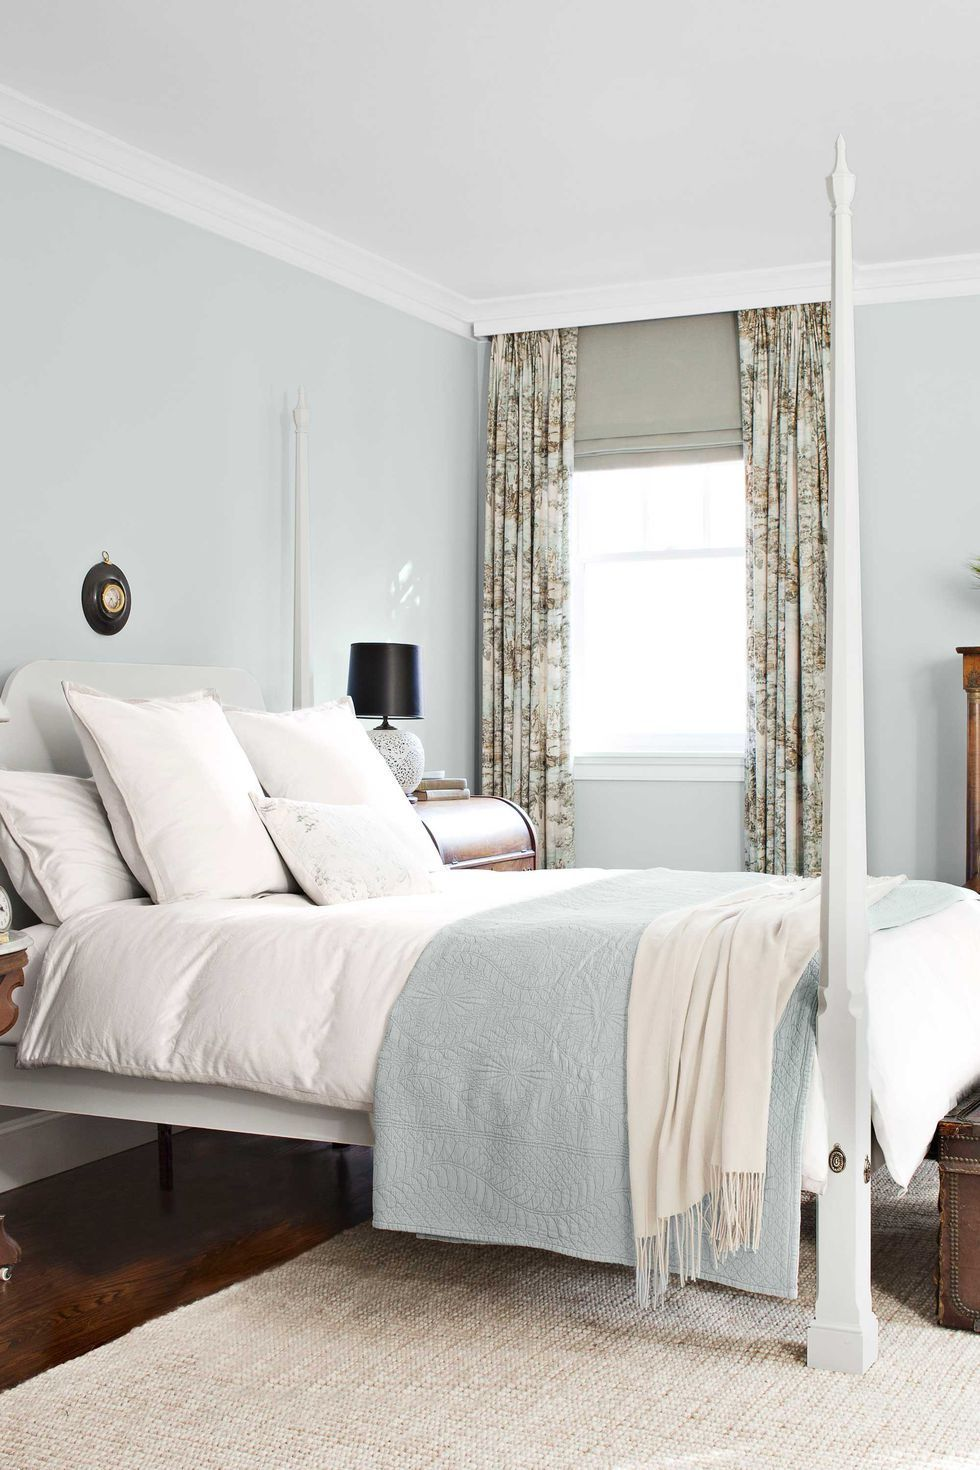 12 Gorgeous Bedrooms Common Questions Answered Warm Bedroom Colors Calming Bedroom Colors Pale Blue Bedrooms